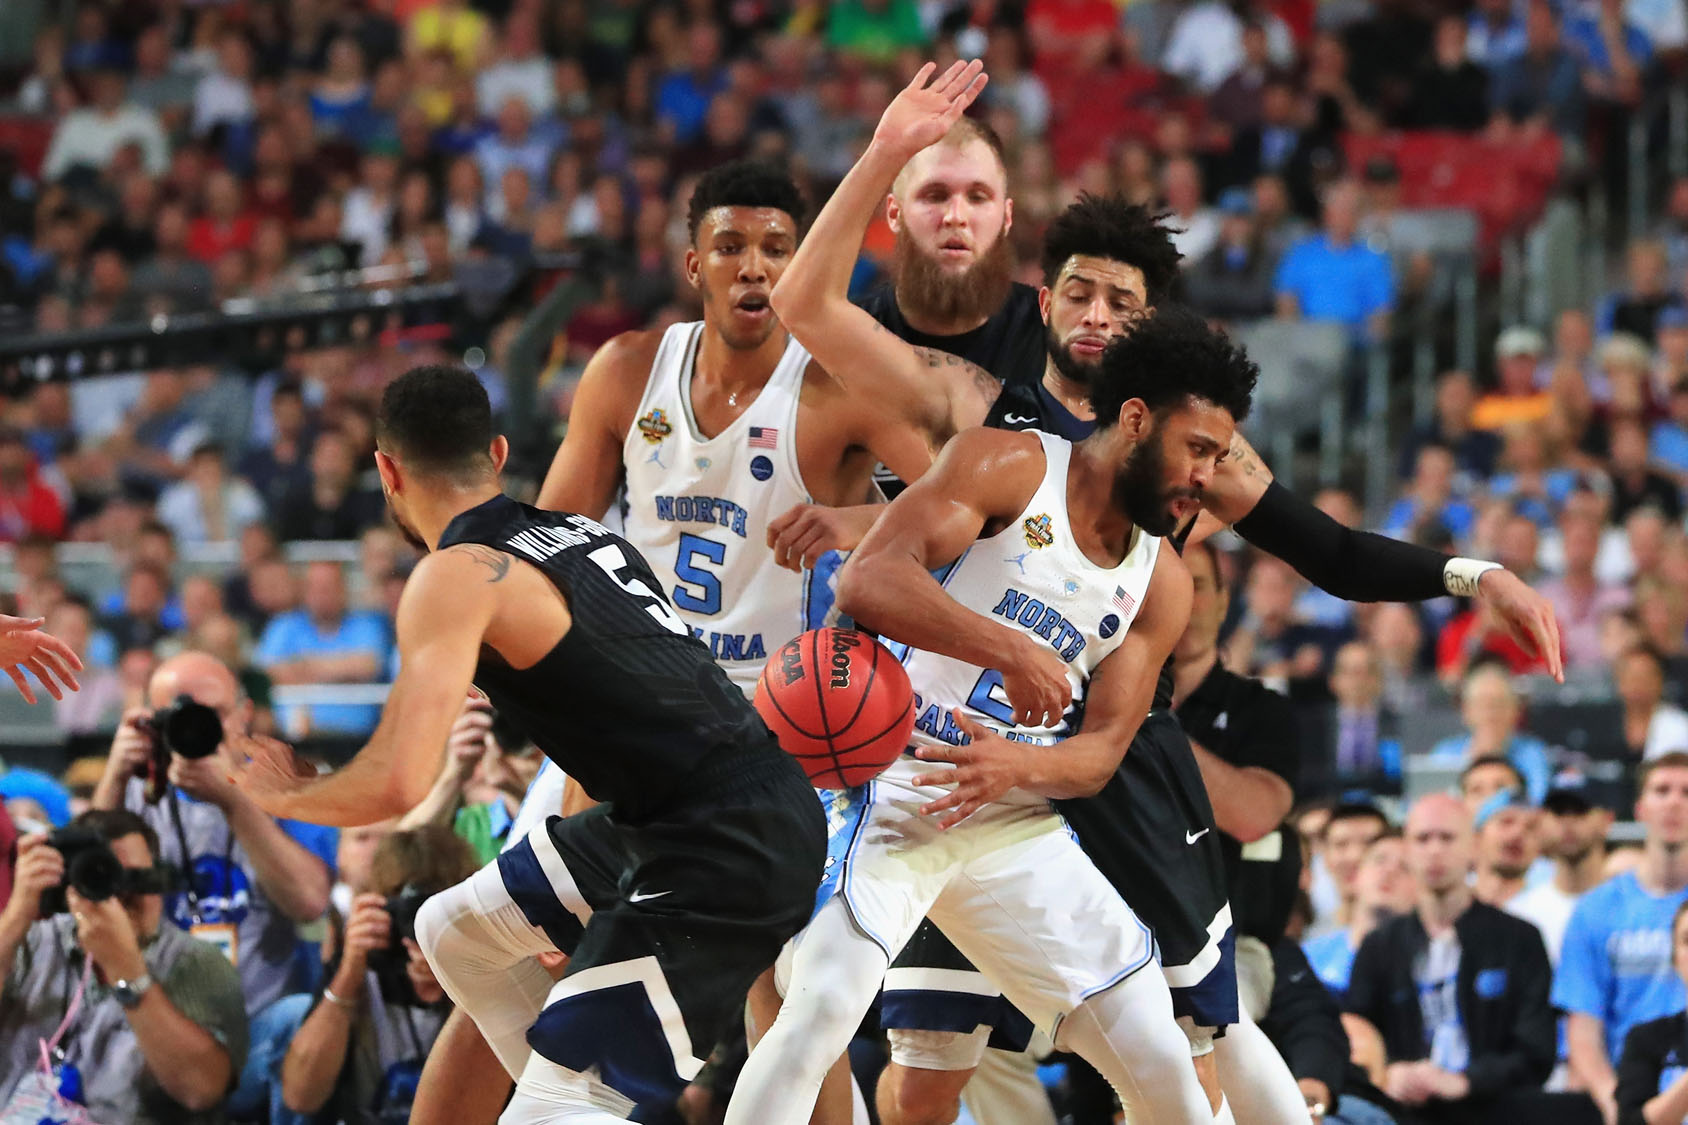 Highlights from the national championship gonzaga vs north carolina -  Gonzaga Bulldogs Defends Joel Berry Ii 2 Of The North Carolina Tar Heels In The Second Half During The 2017 Ncaa Men S Final Four National Championship